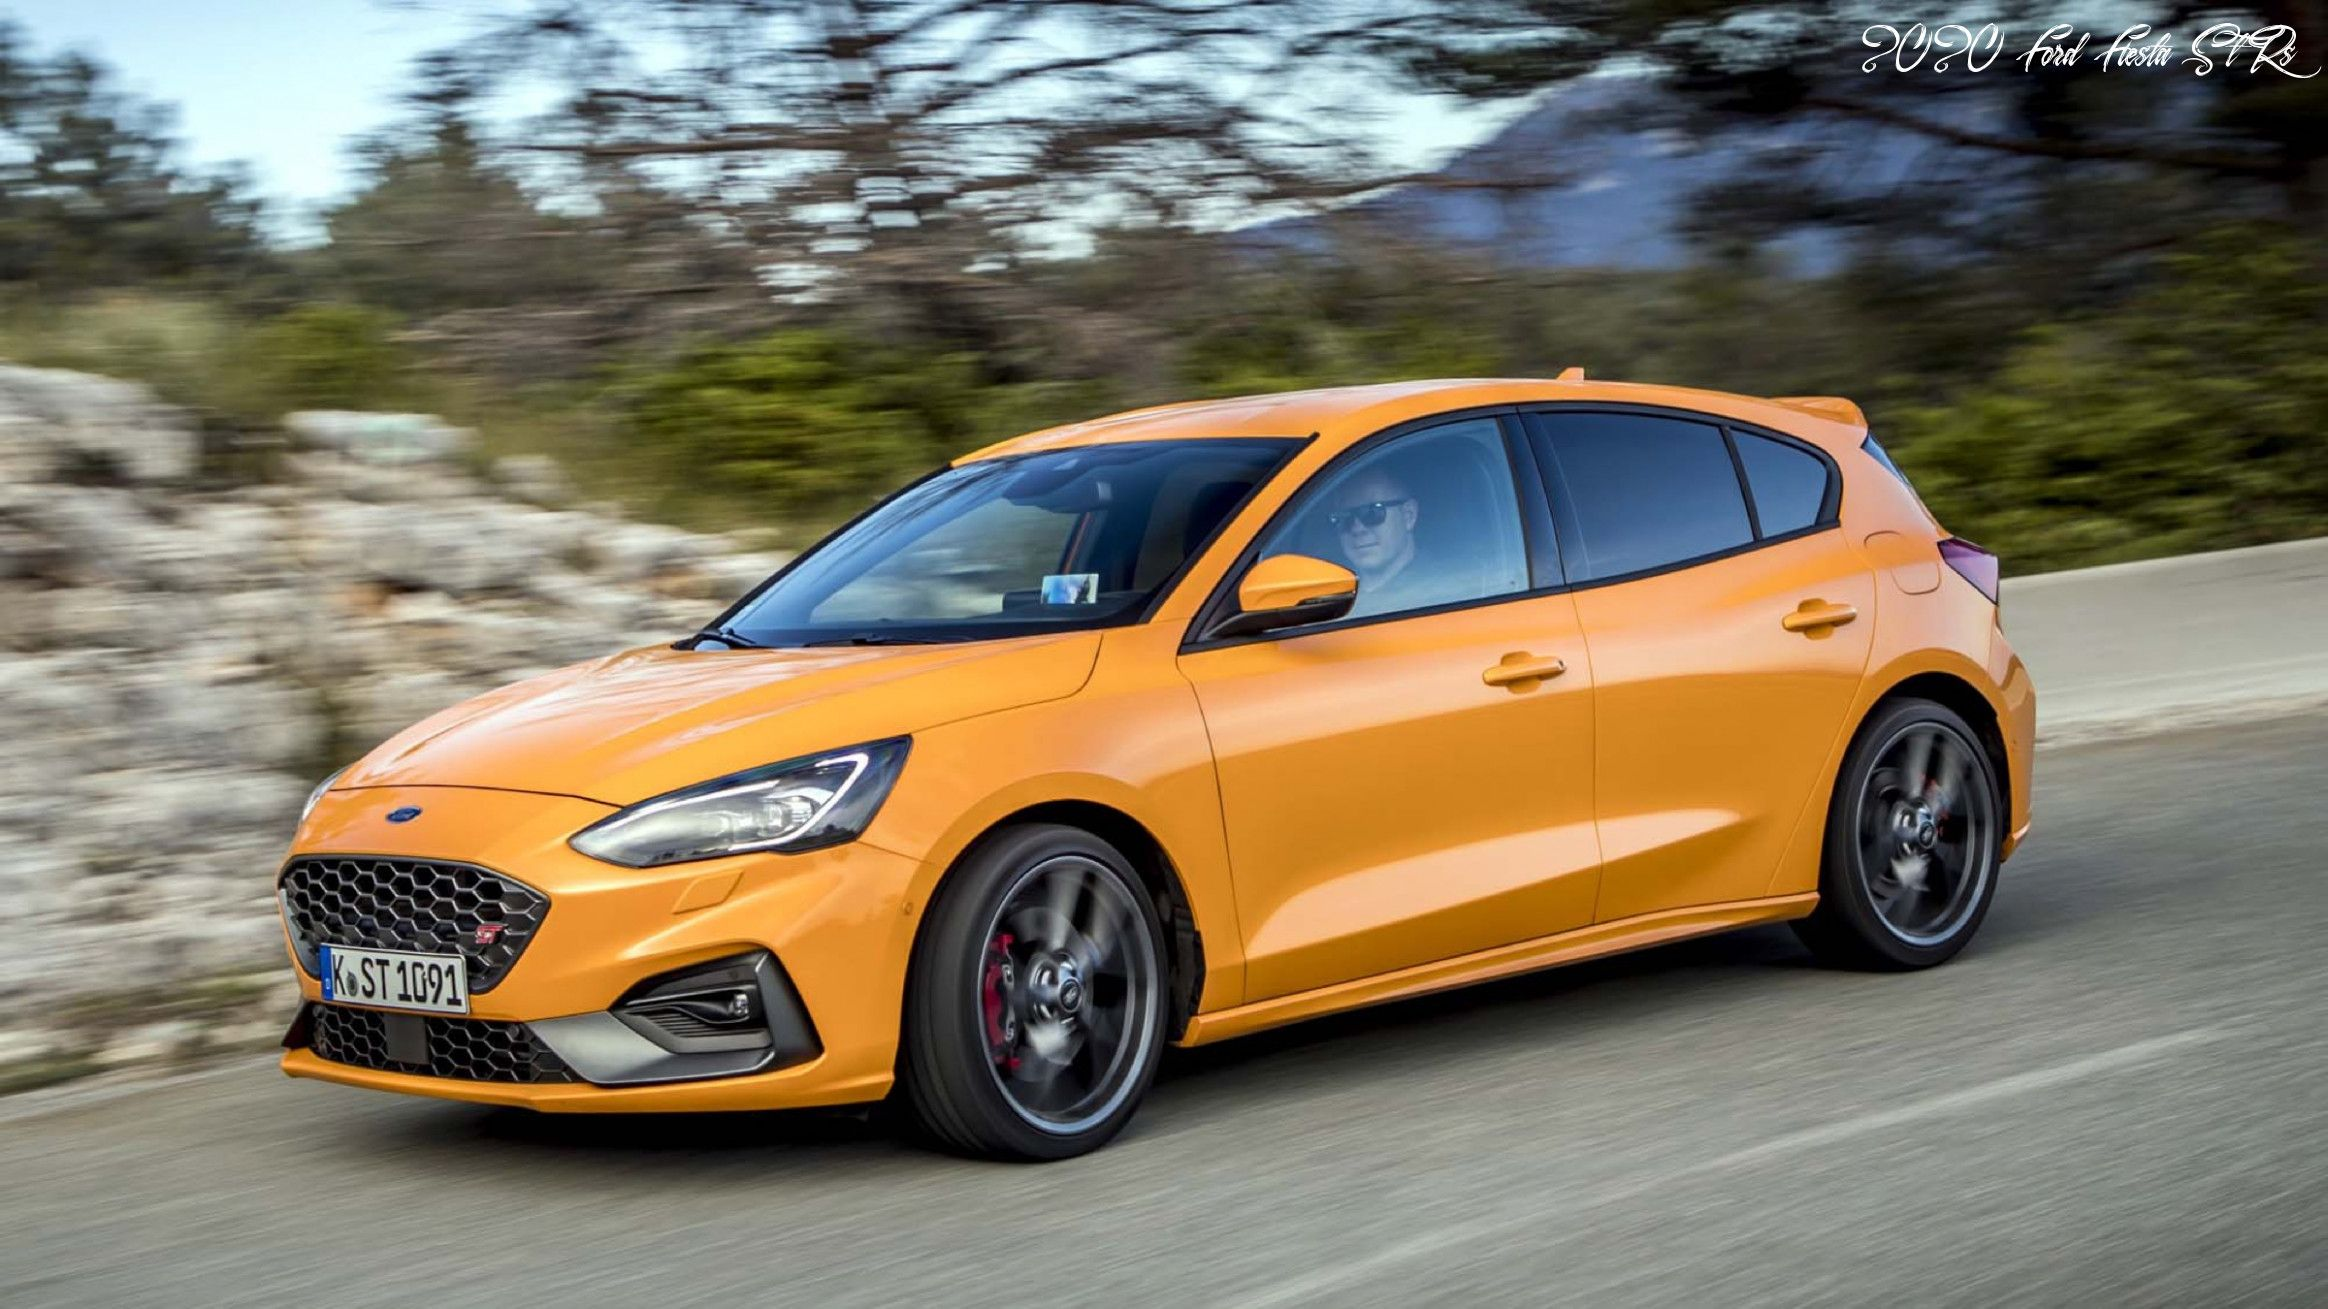 2020 Ford Fiesta St Rs History In 2020 Ford Focus St Ford Focus